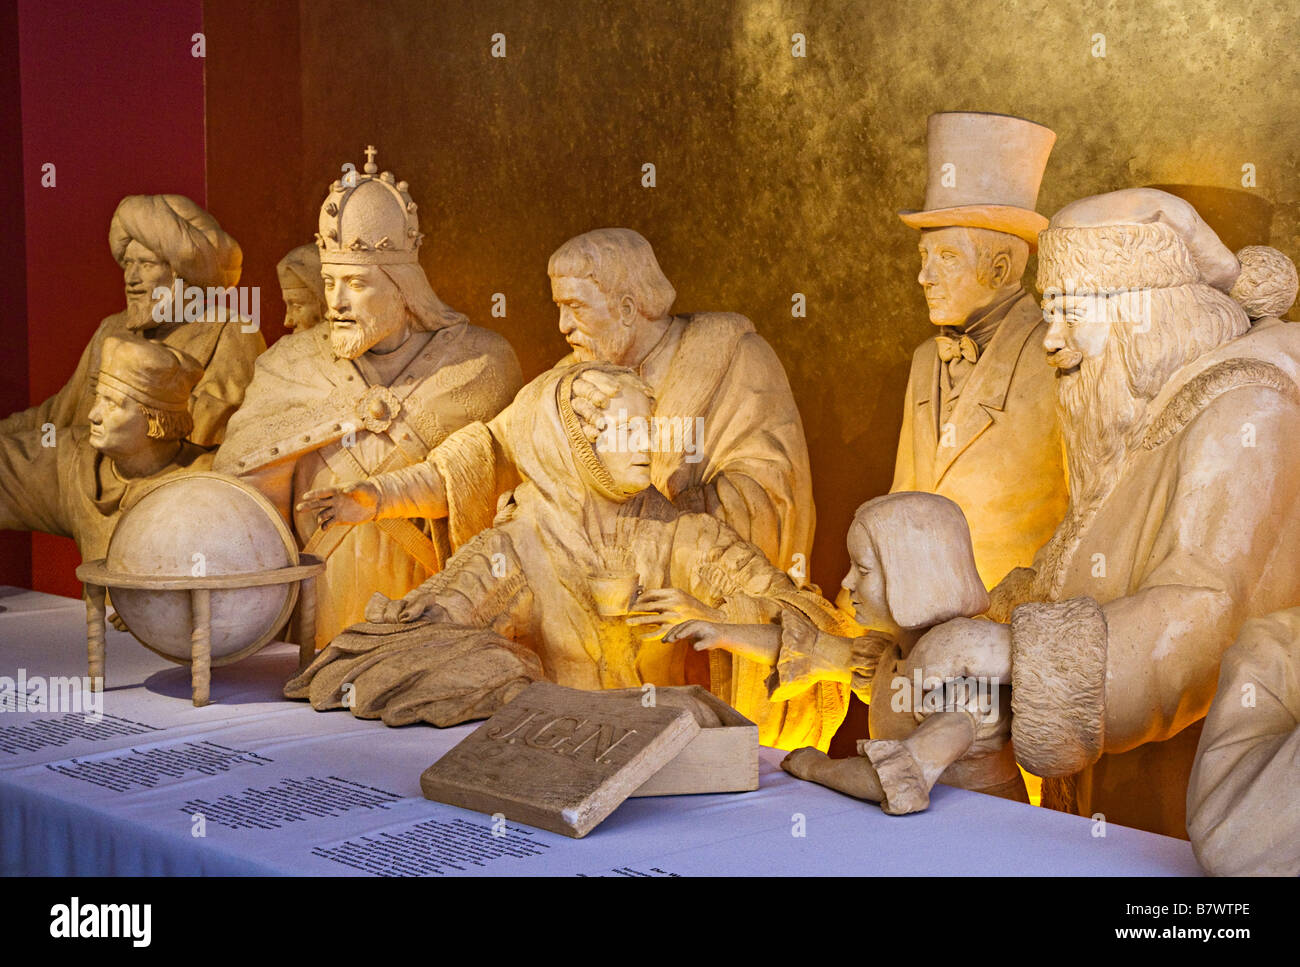 Tableau of figures made out of marzipan in the Marzipan salon Niederegger Lubeck Germany - Stock Image